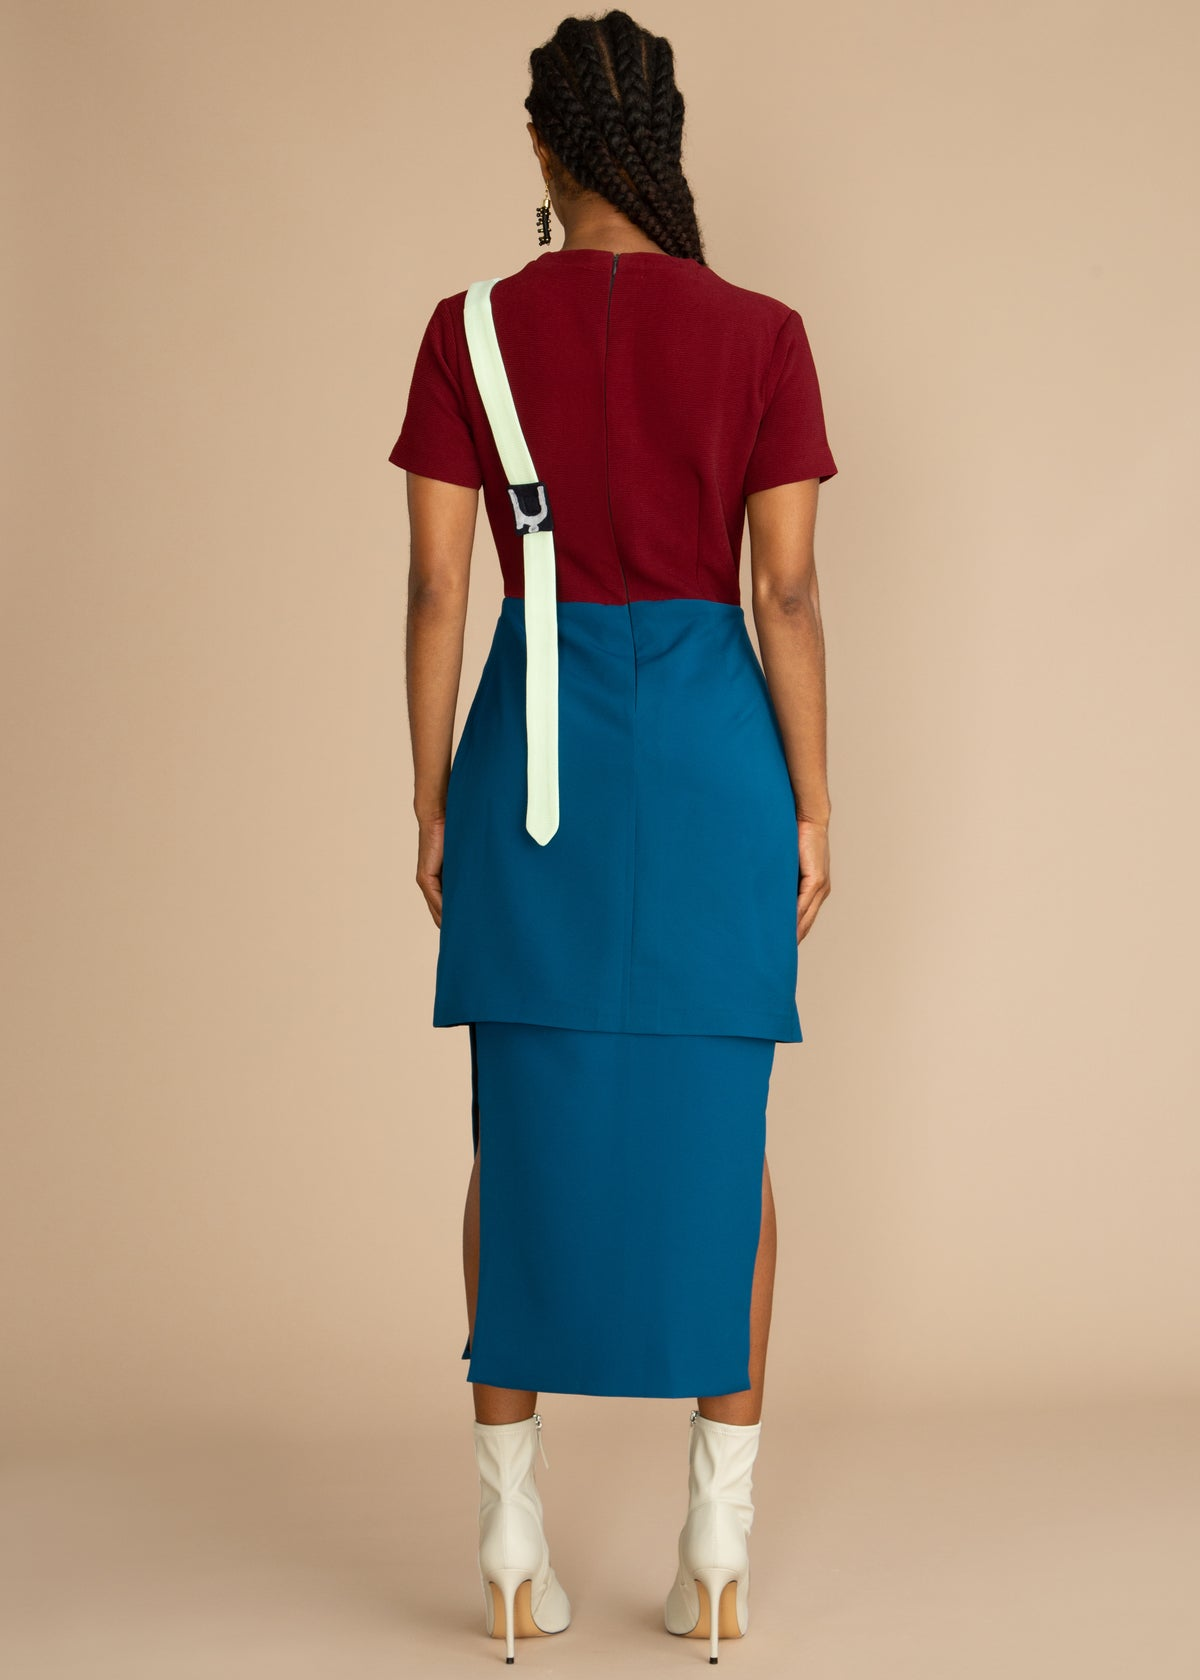 Gozel Green Color Block Blue and Red Midi Dress